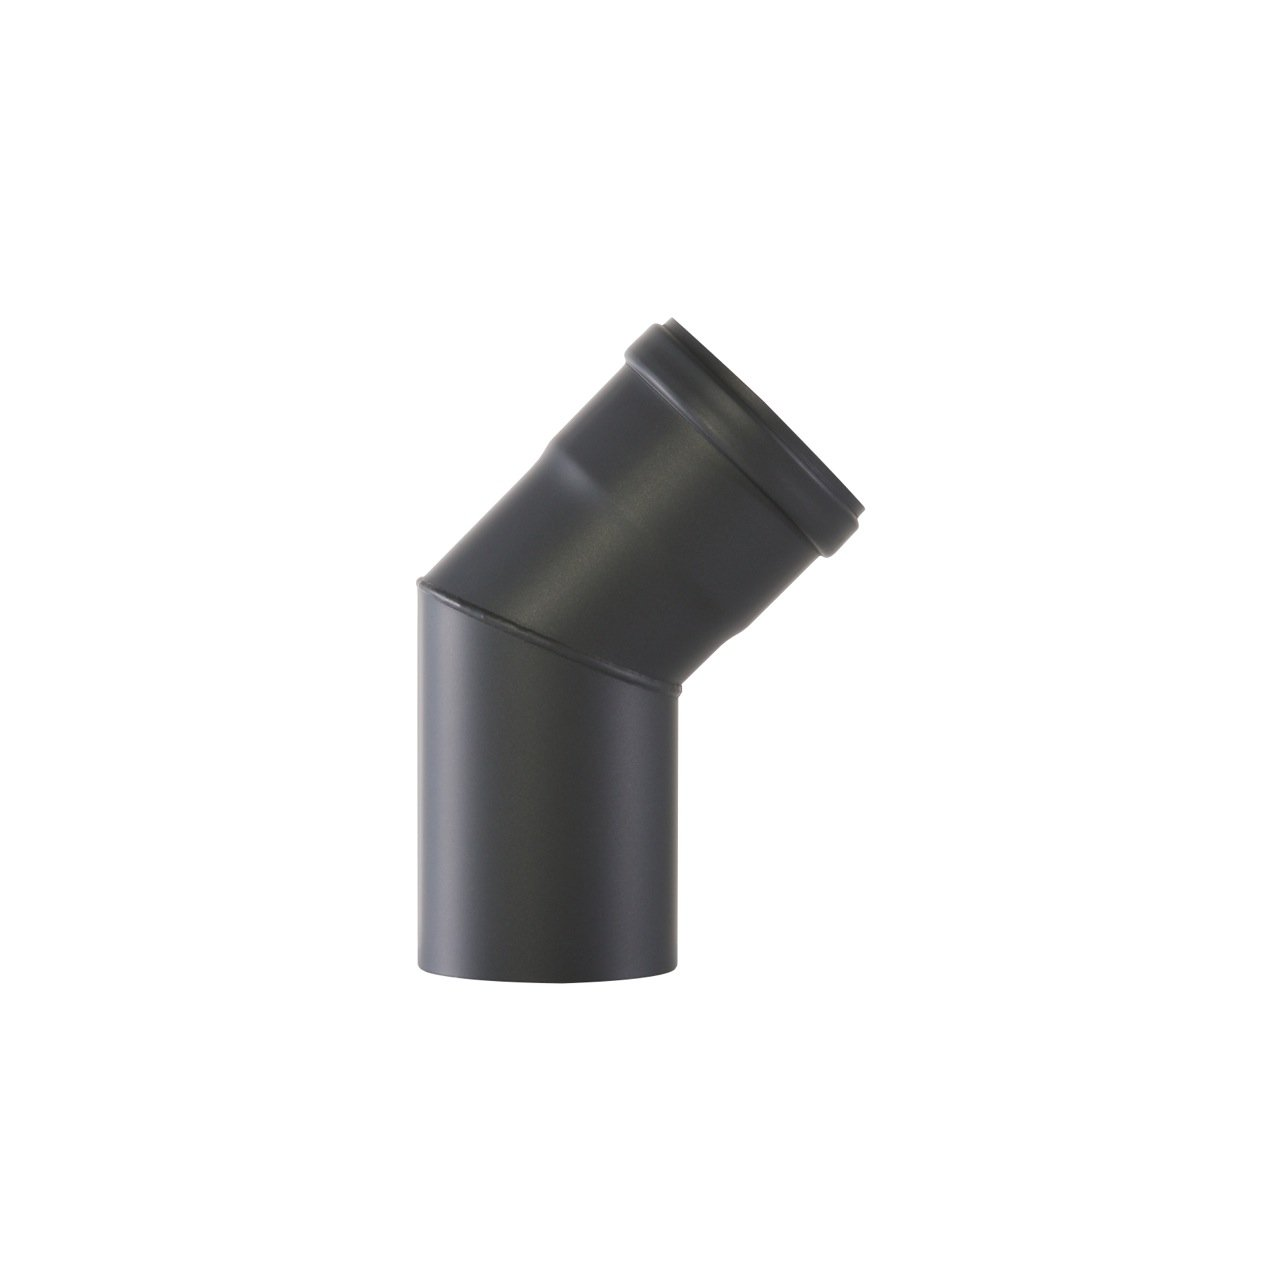 Kamino-Flam 45° Elbow Pipe Ø 100 mm, Steel Elbow Pipe Suitable for Pellet Stoves, Senotherm Coated Elbow Chimney Pipe, Heat Resistant Flue Elbow with Silicone Seal, EN 1856-2 Standard, Black Kamino - Flam 122684